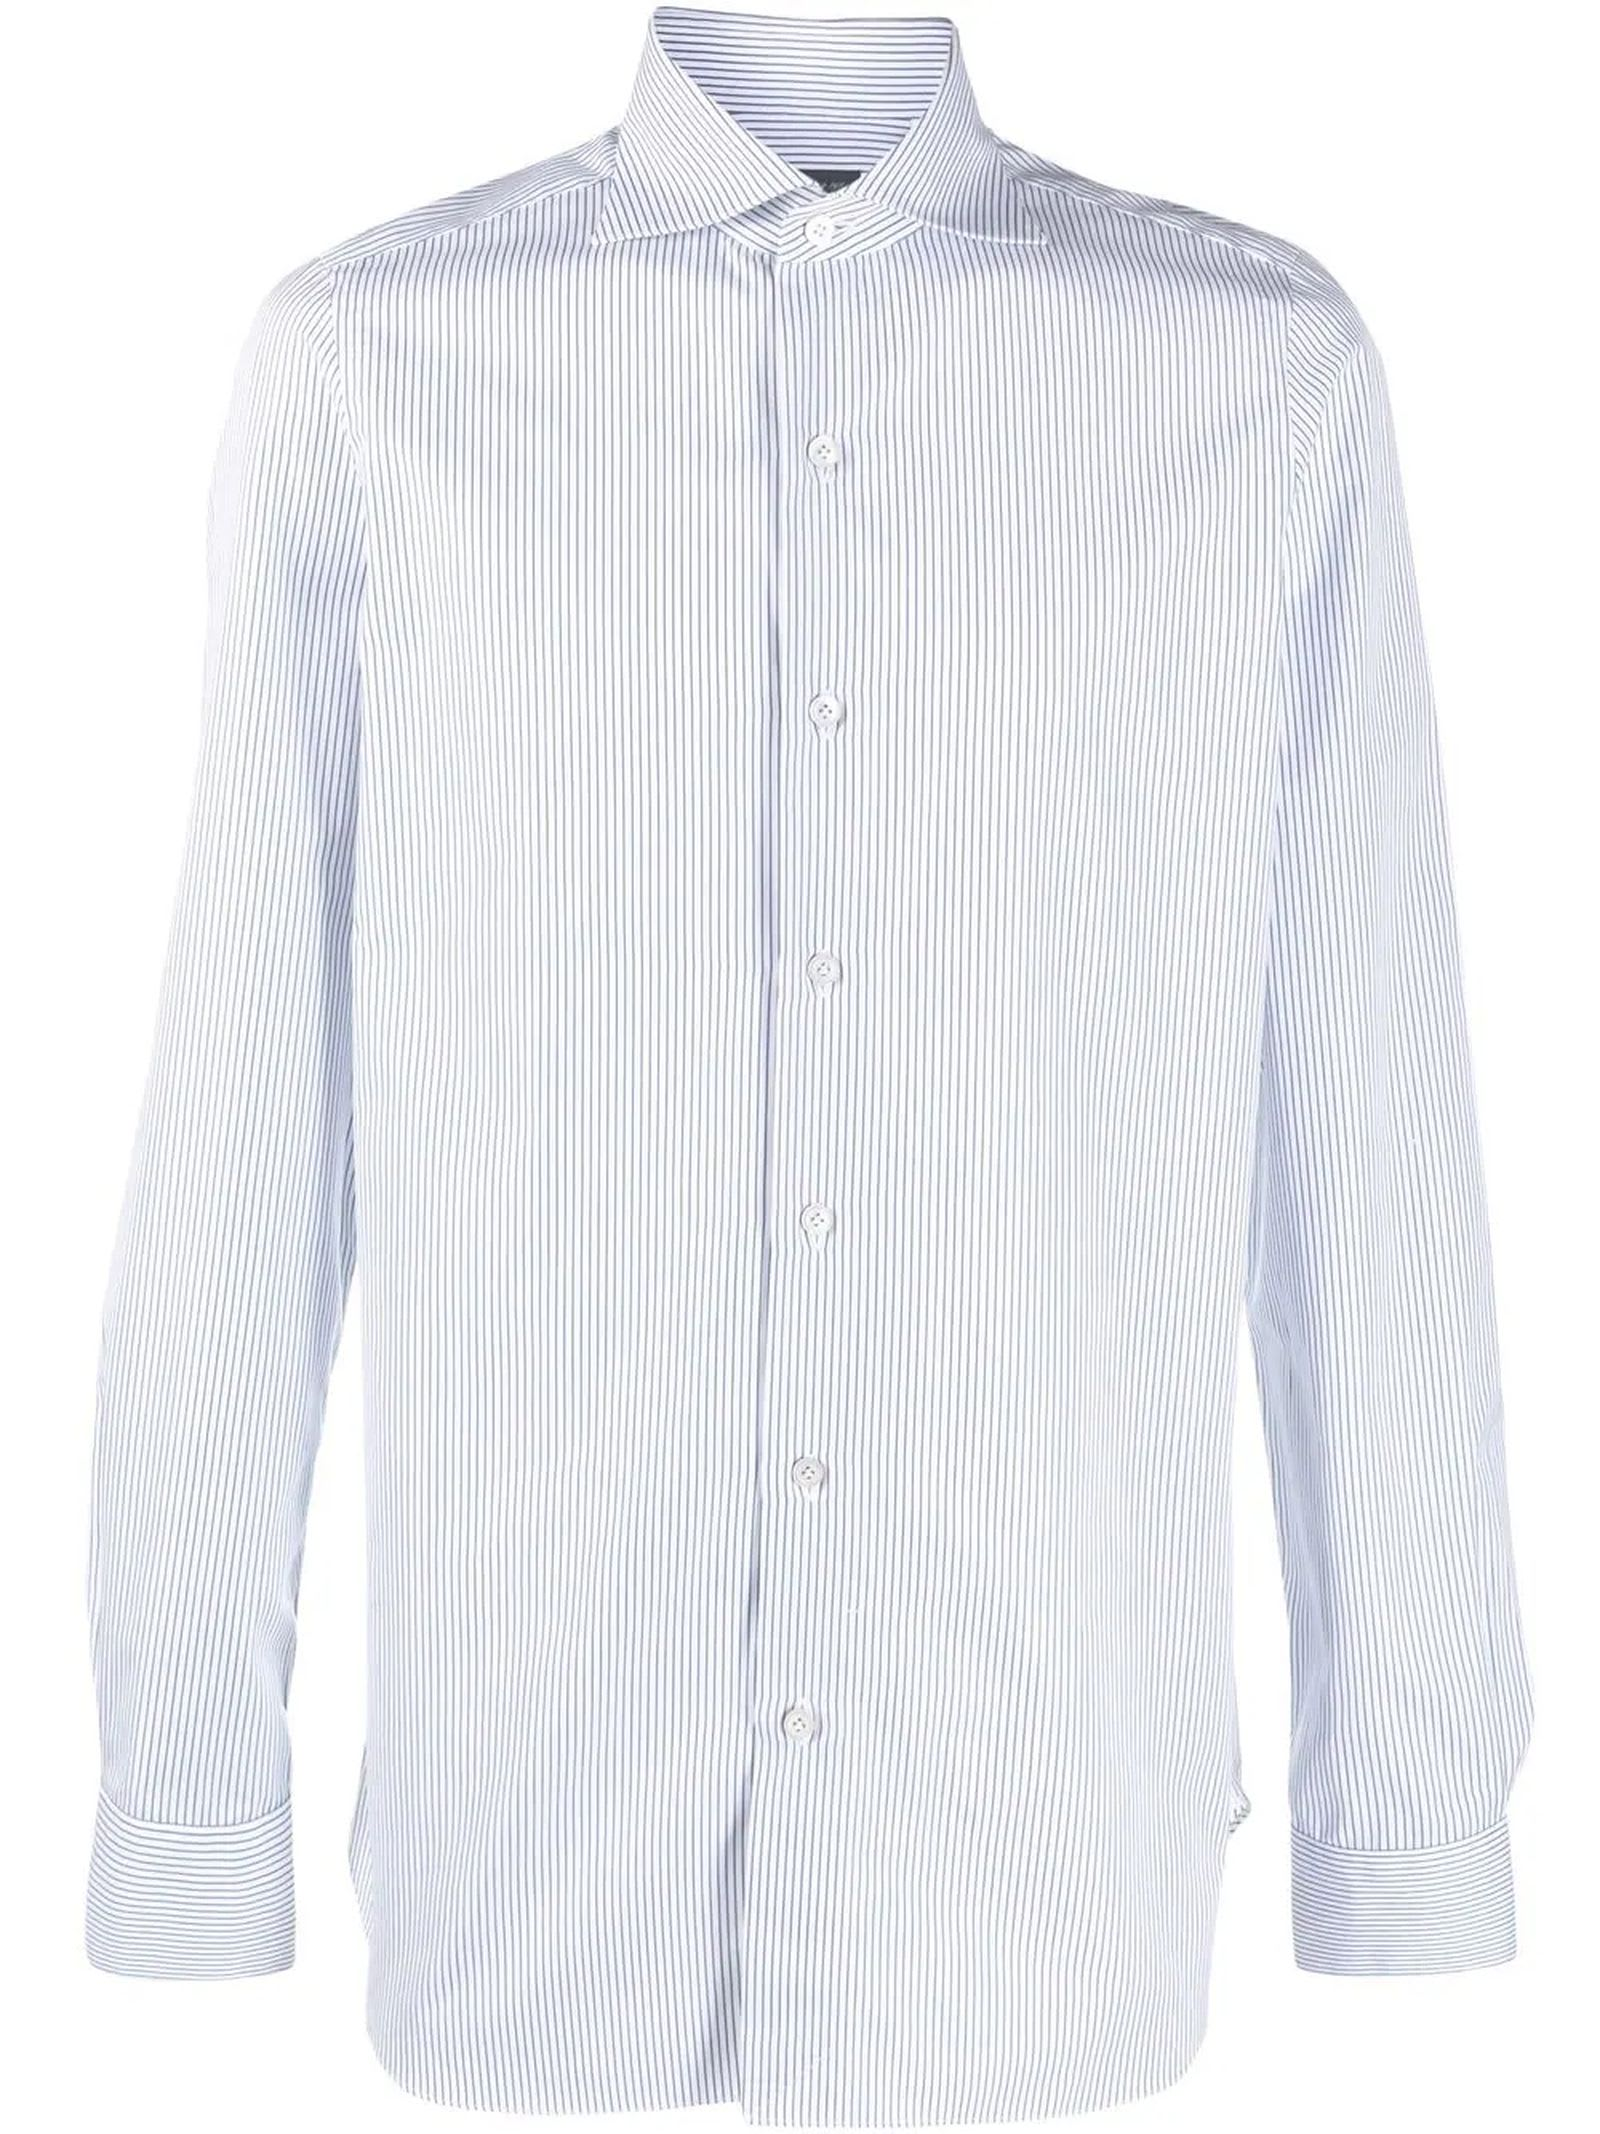 White And Blue Cotton Shirt